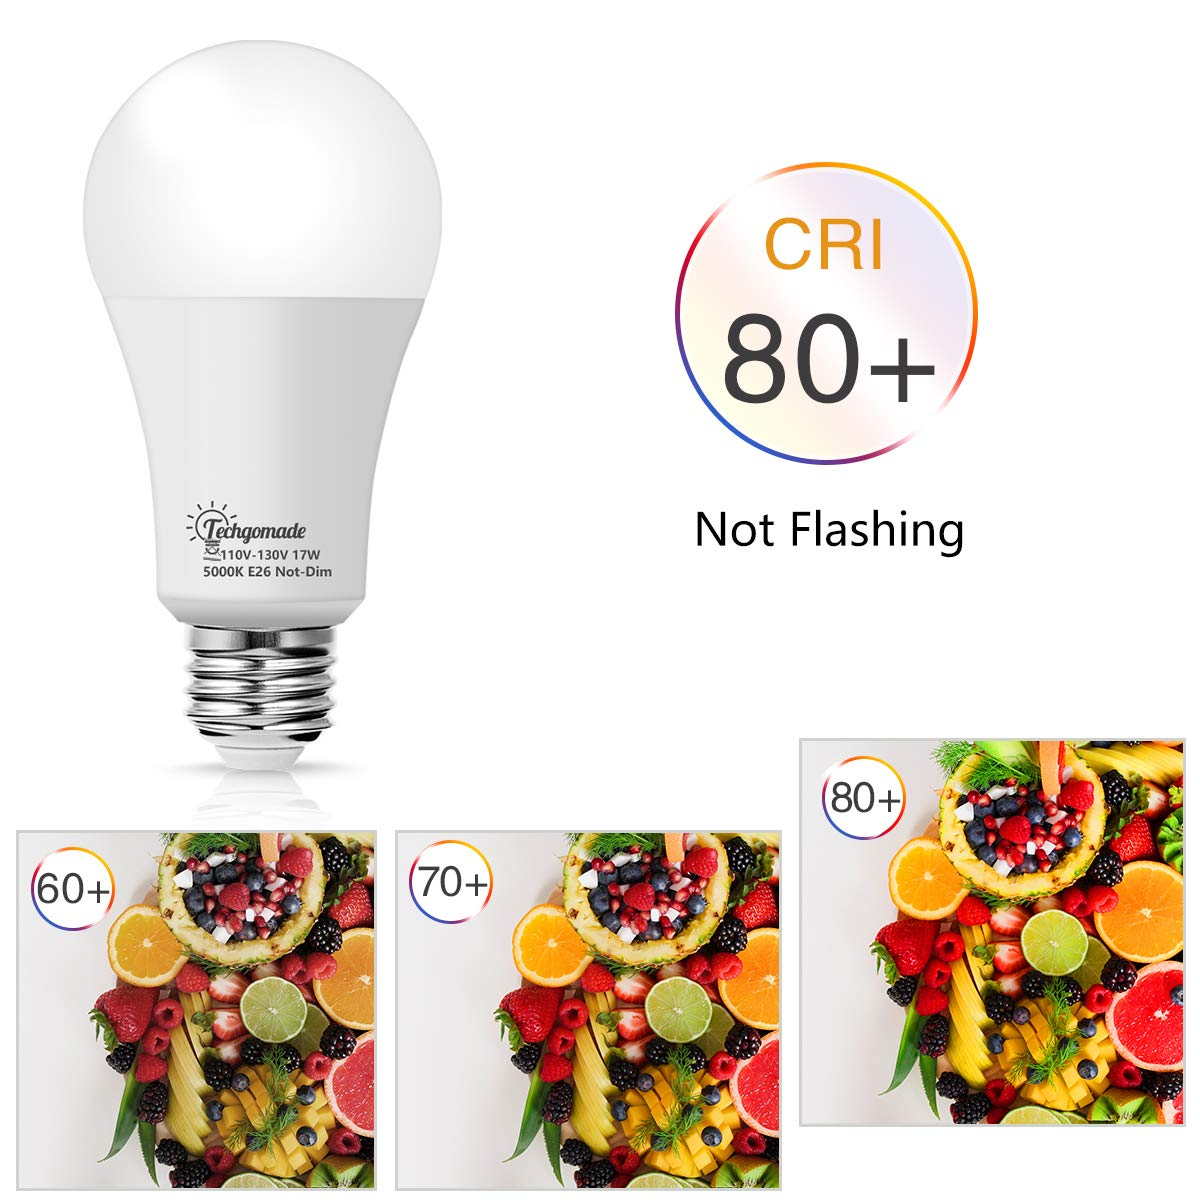 Porch Not-Dimmable LED 4 Pack for Home or Outdoor Lighting Techgomade 17W A19 LED Light Bulb 200W Incandescent Bulb Equivalent 1600LM High Brightness Hallway Daylight White 5000K